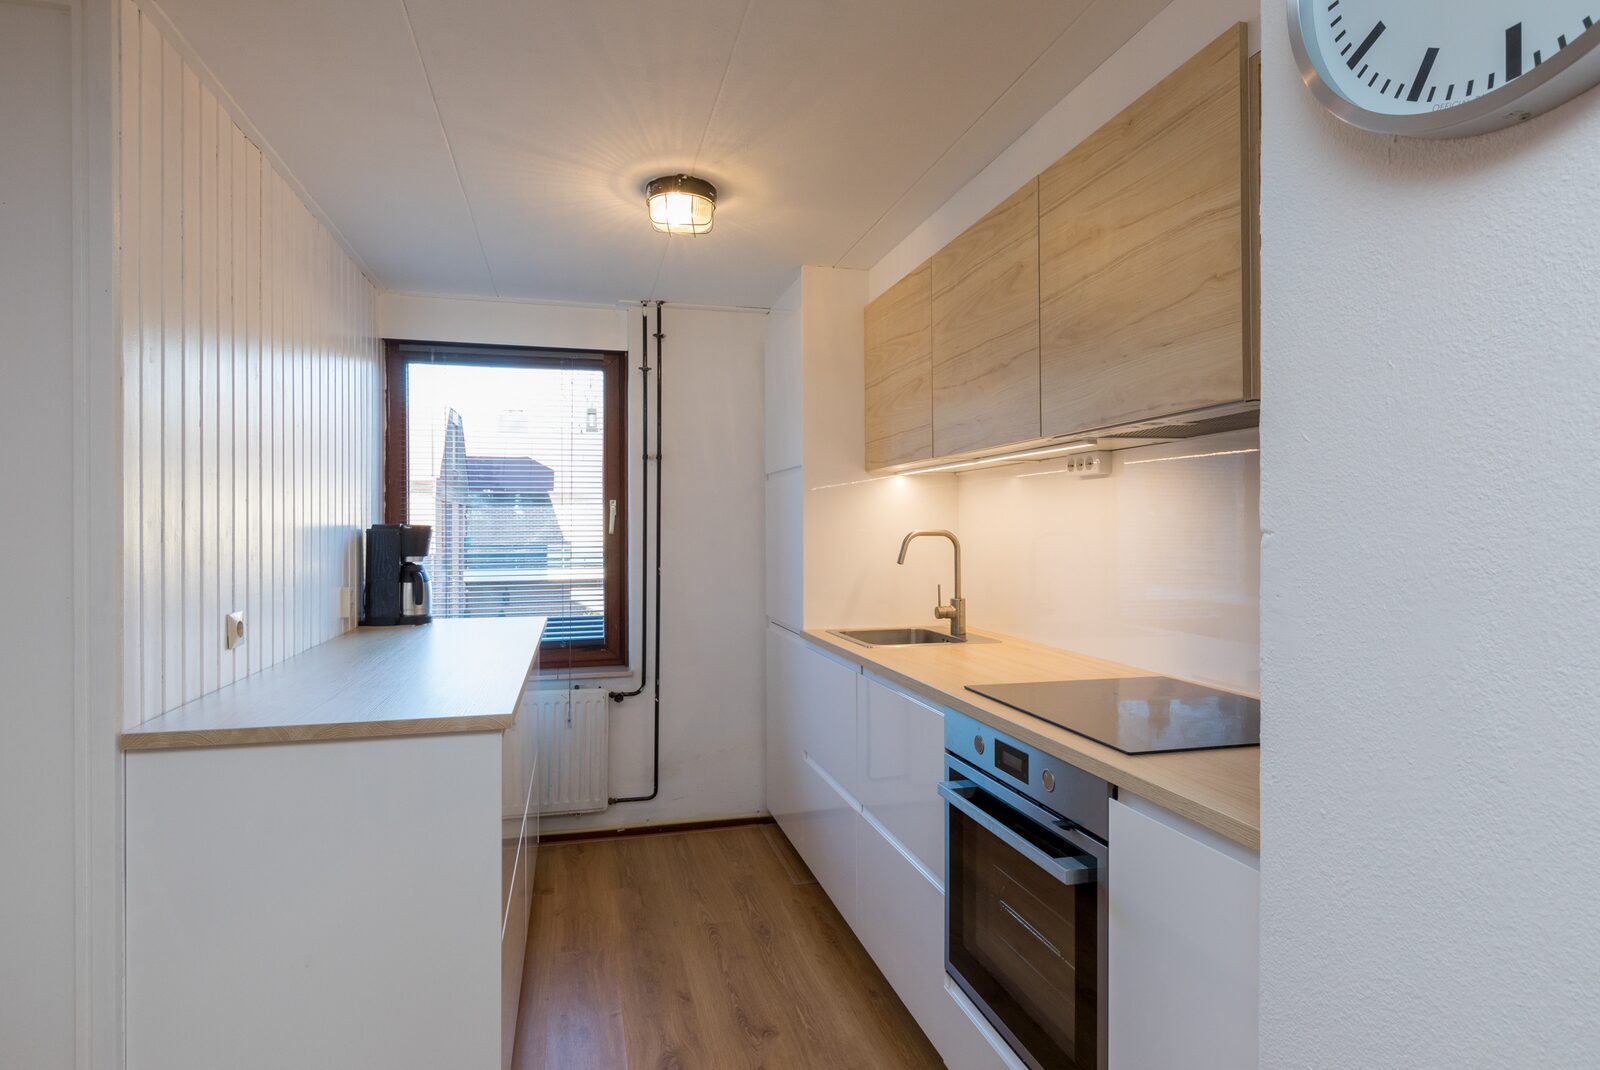 Appartment - Kievitenlaan 22 | Veere